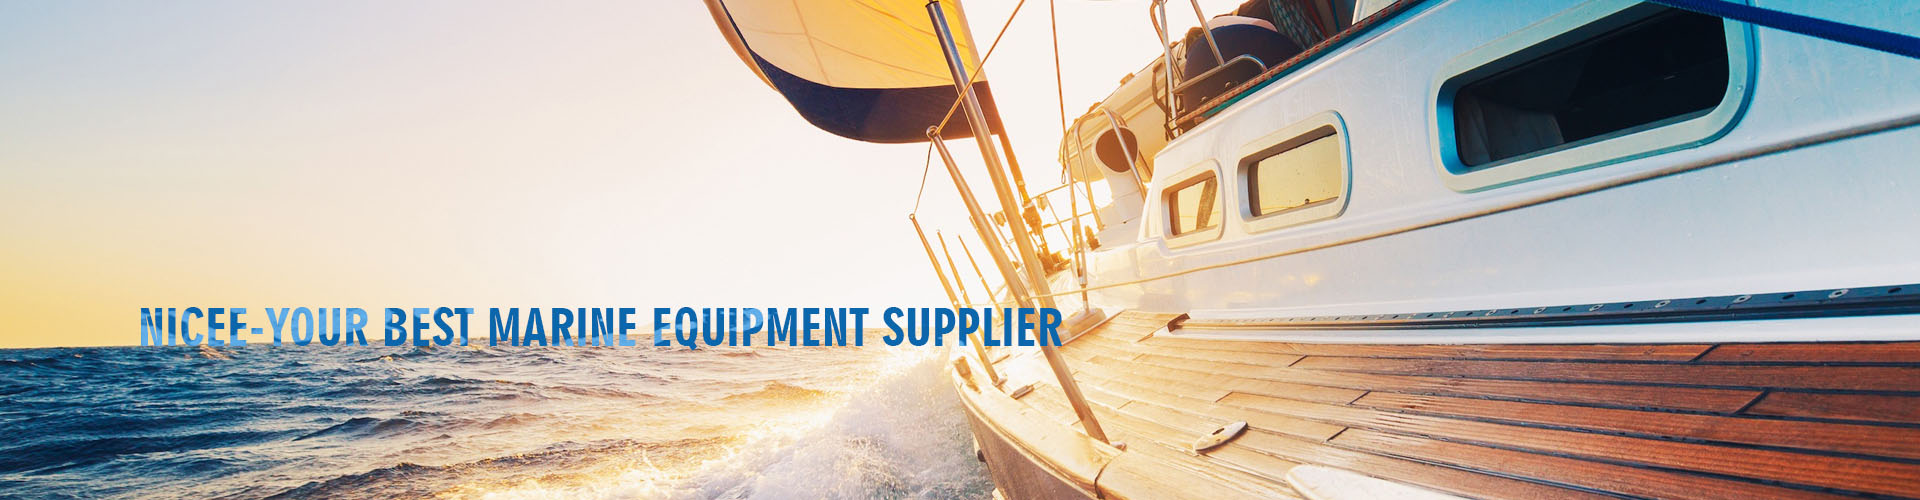 marine equipment supplier